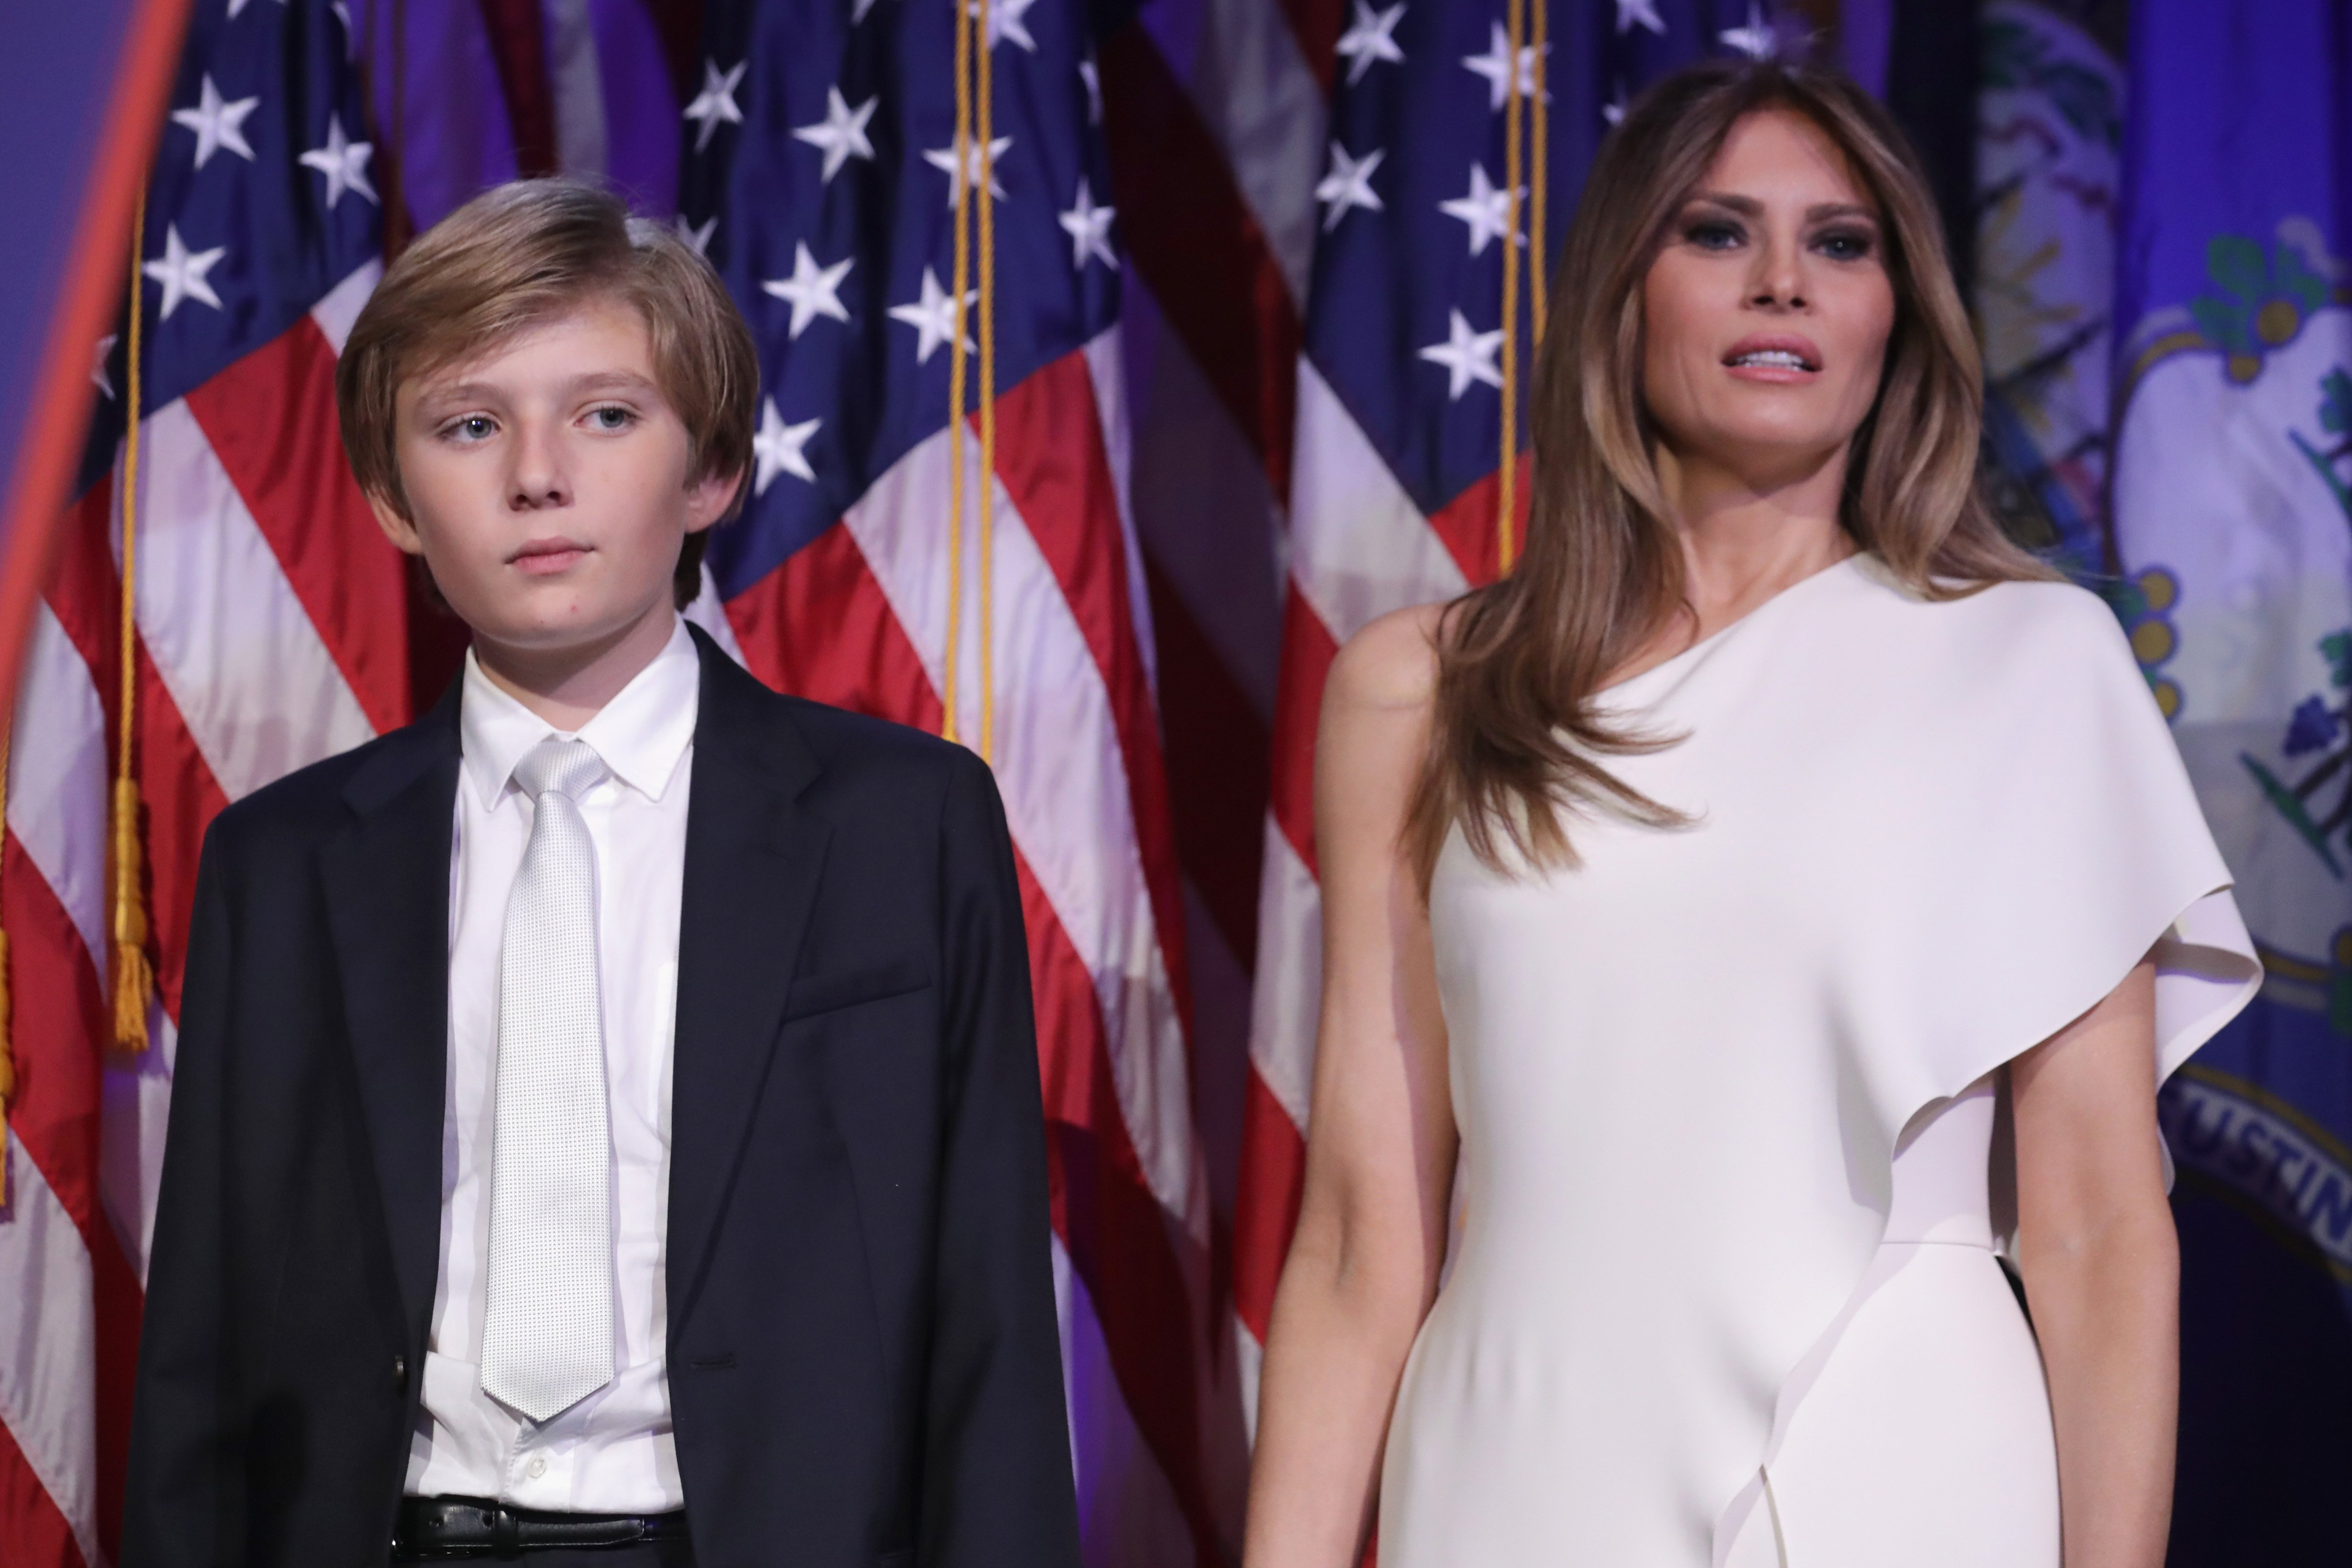 Barron Trump and Melania Trump at the New York Hilton Midtown in the early morning hours of November 9, 2016 | Photo: GettyImages